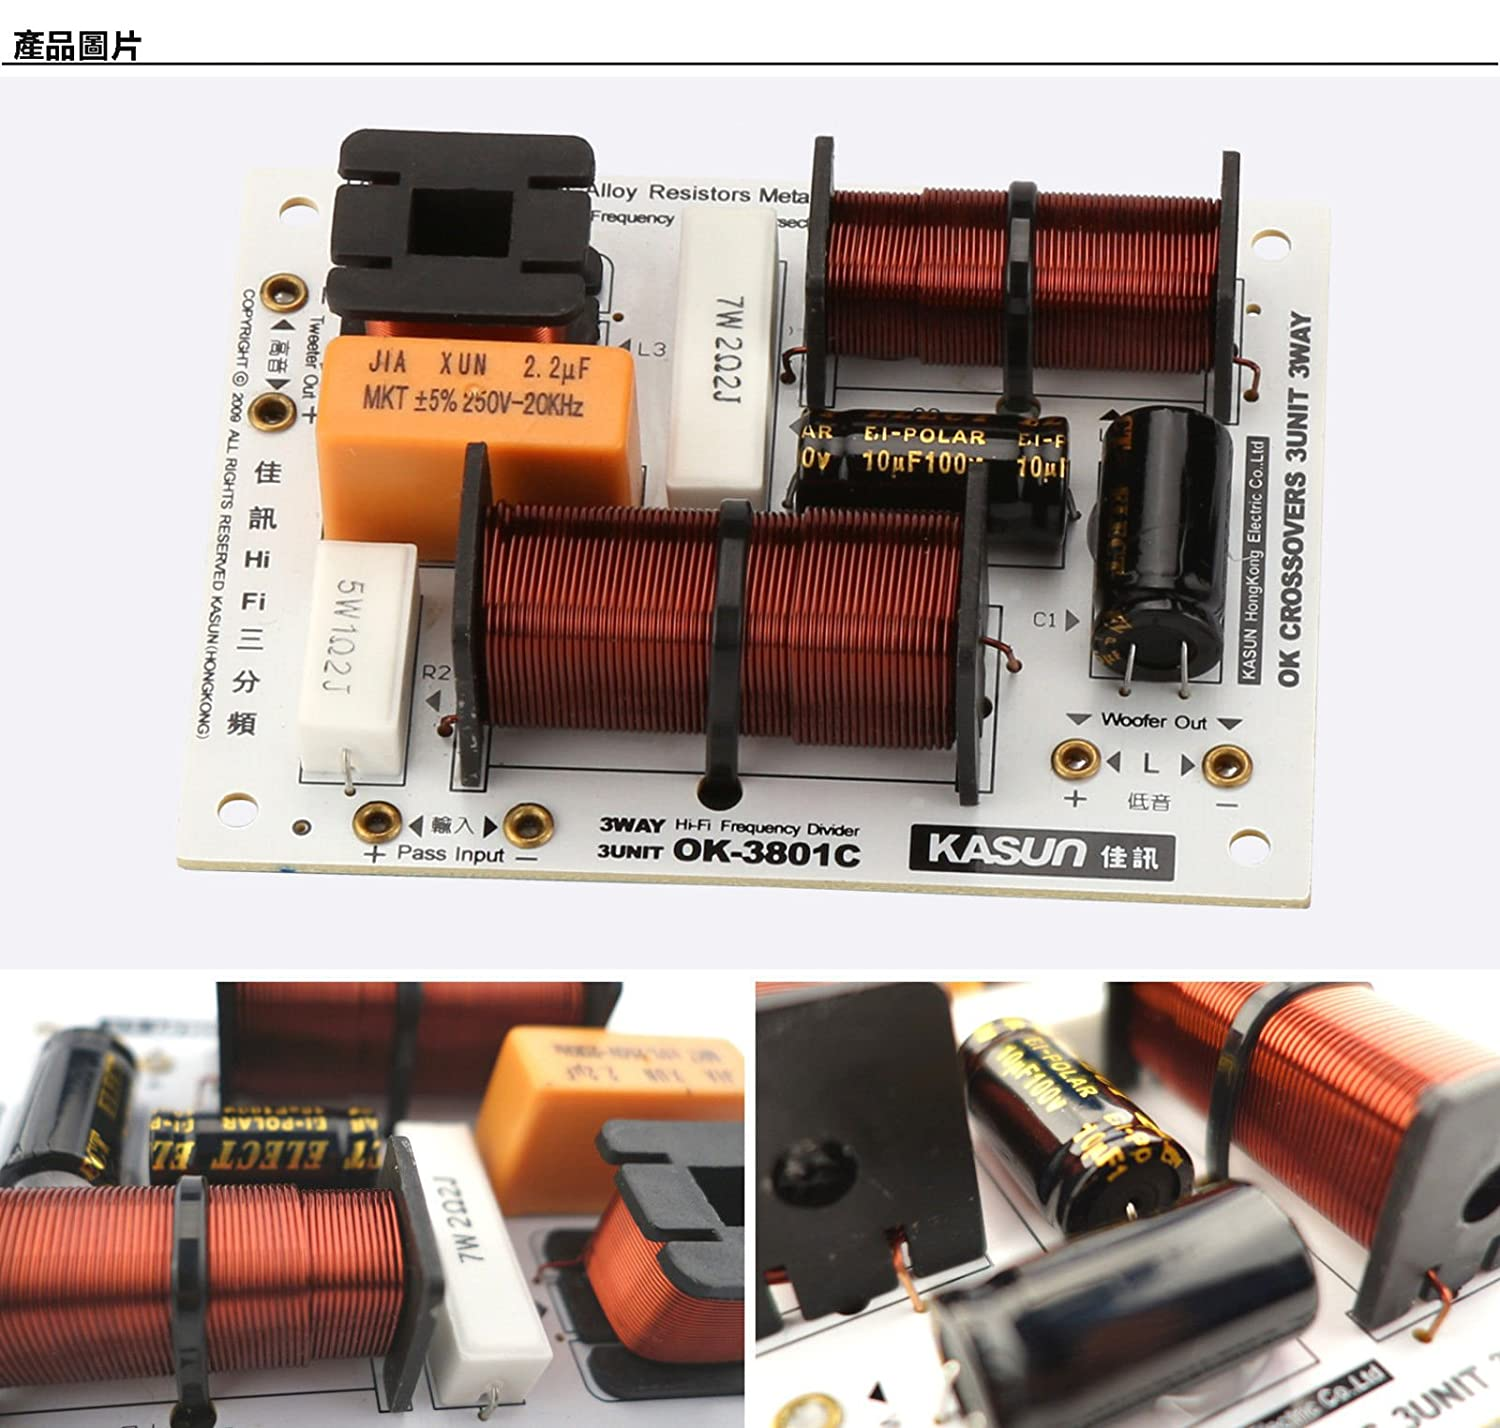 2pcs Kasun Hi Fi Speaker Frequency Divider Crossover Electronic Circuit Diagram Audio Amplifier An7135 7w Filters 3way 3unit Ok 3801c Home Theater